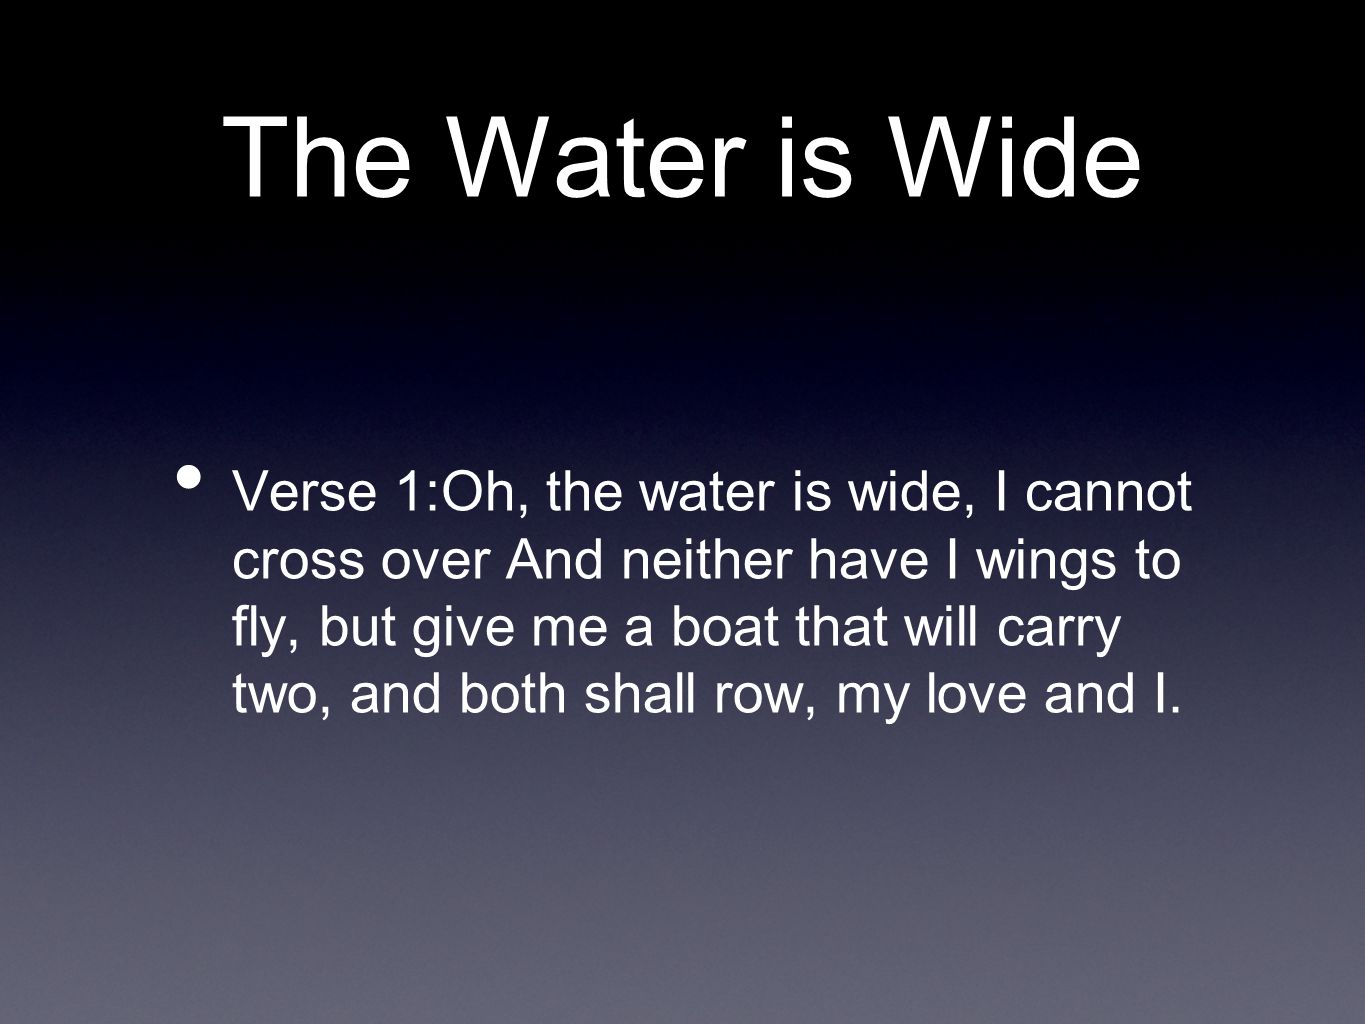 The Water is Wide Verse 1:Oh, the water is wide, I cannot cross over And neither have I wings to fly, but give me a boat that will carry two, and both shall row, my love and I.